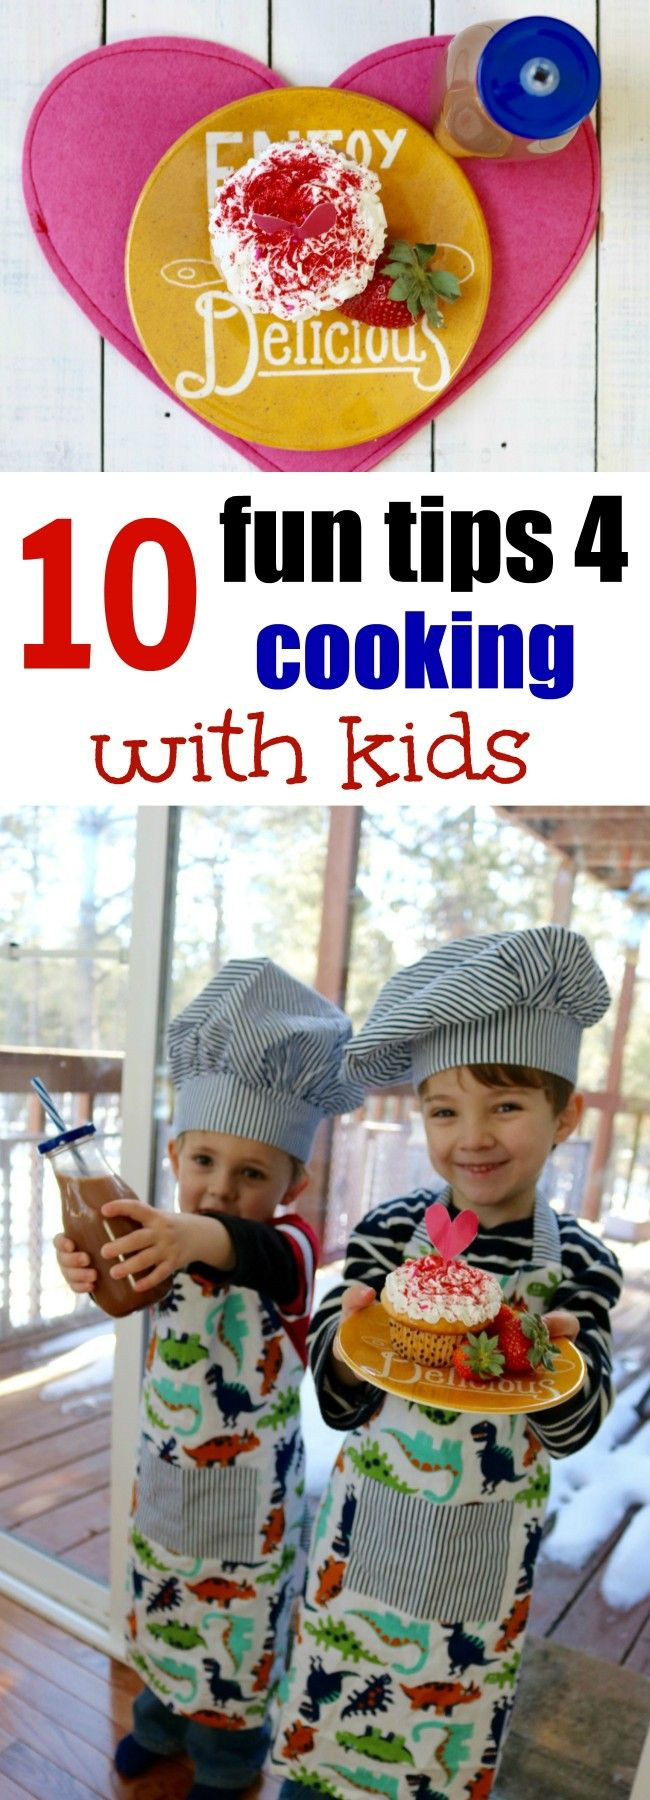 Number 5 is so true - I love this post on 10 fun tips for cooking with kids. This gal knows how to cook and I love that she's teaching her boys. Some lucky girl is going to get a husband who can cook someday. What a great idea to inspire parents to teach the whole family how to cook!